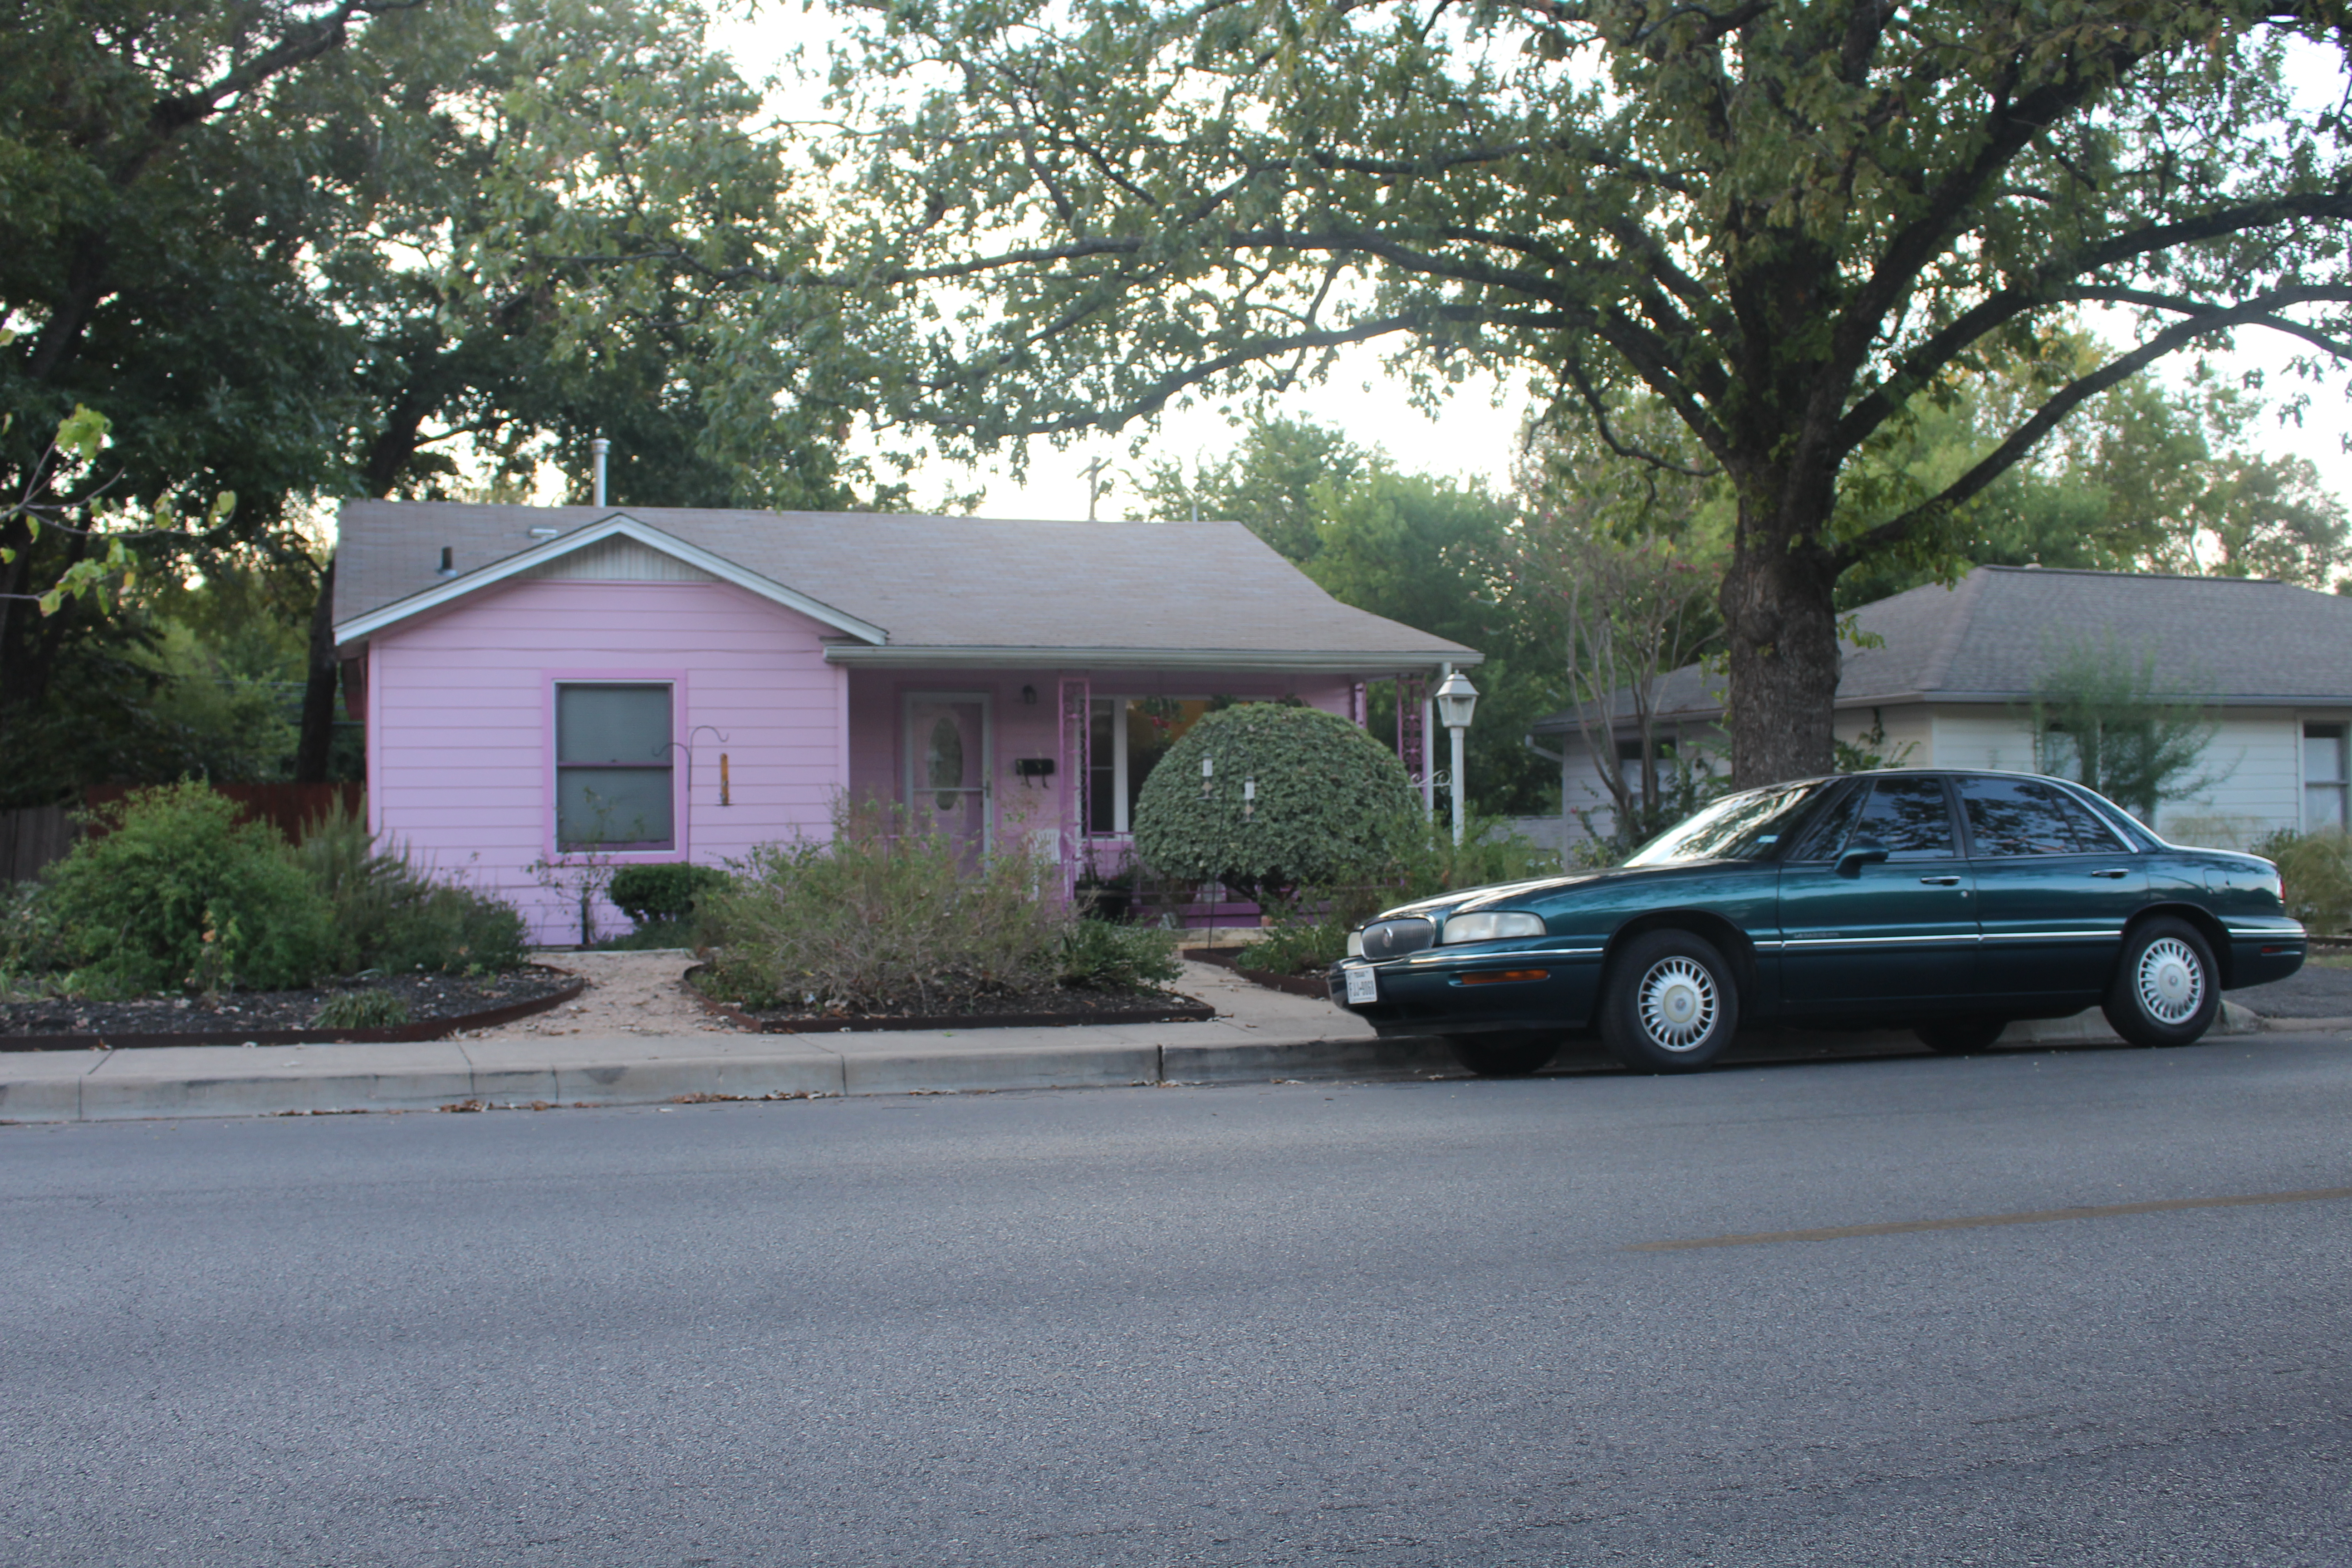 This colorful home on Cherrywood Rd. is a reminder of East Austin's changing community